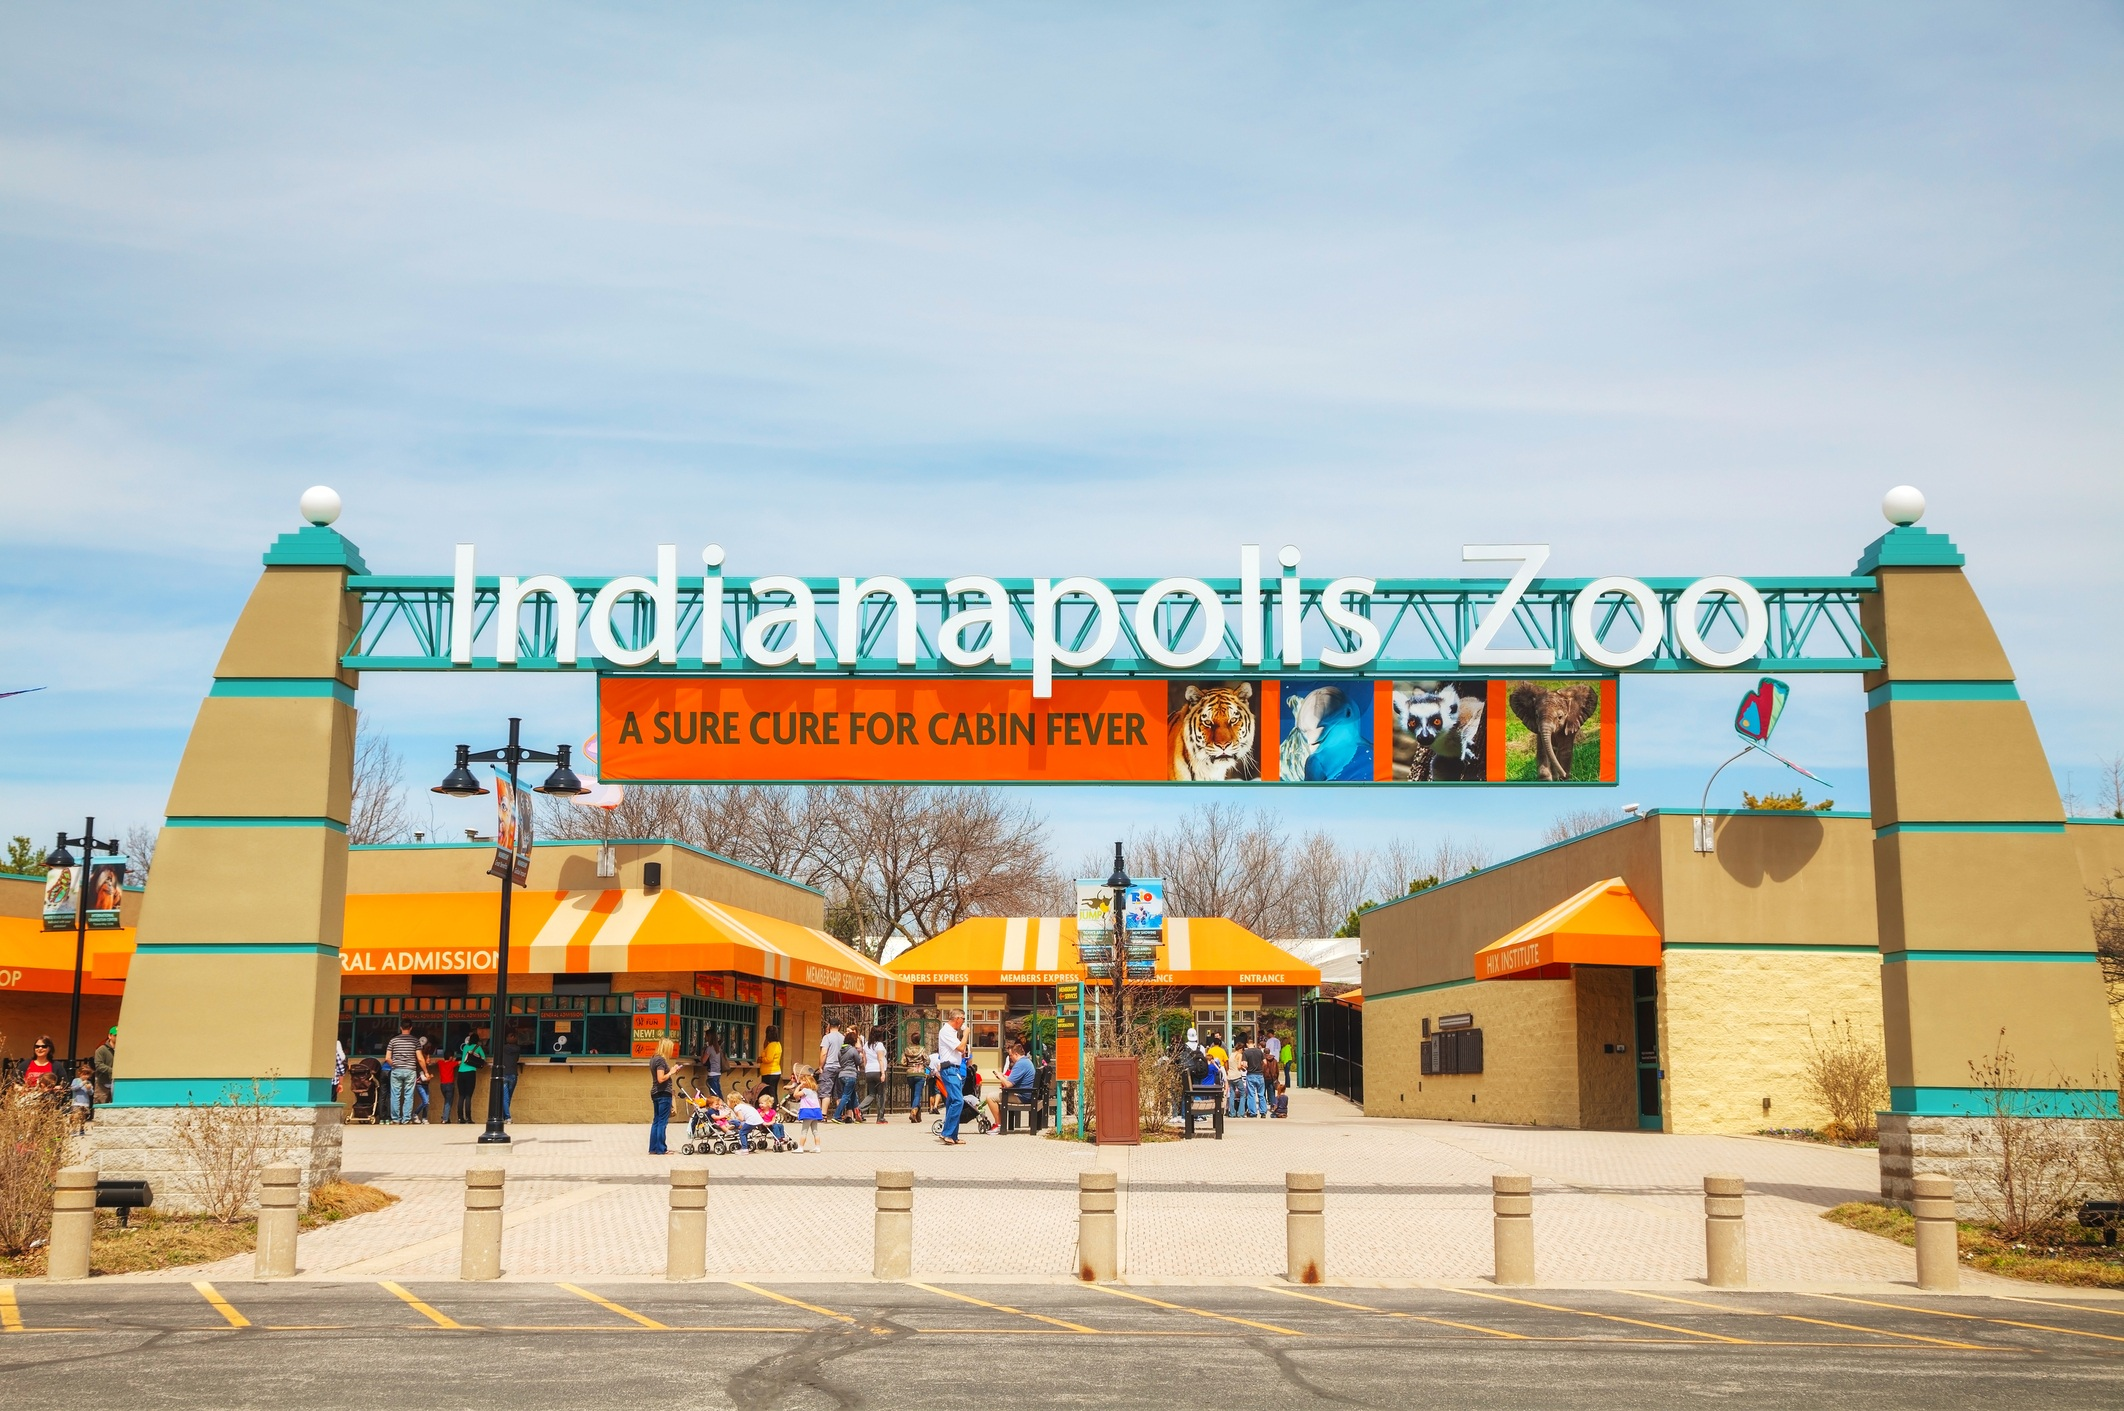 Entrance to the Indianapolis Zoo